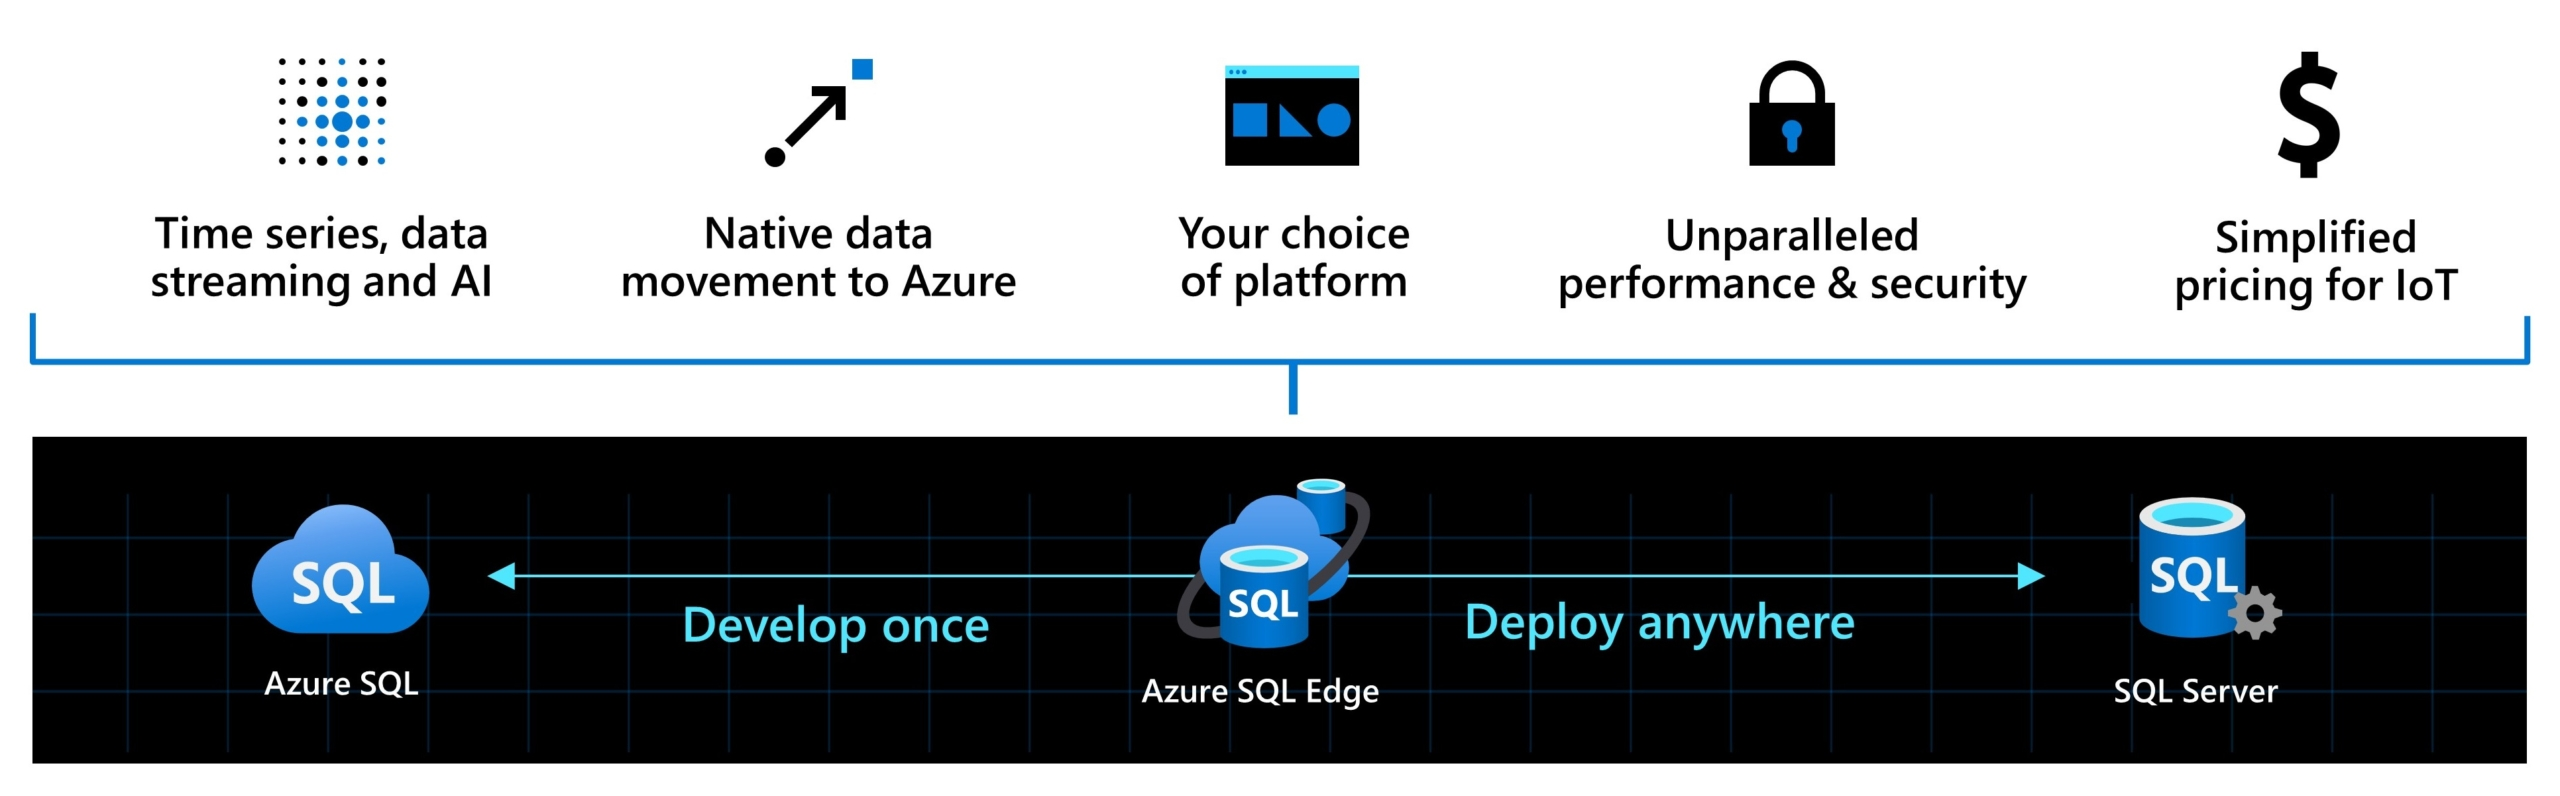 Azure SQL Edge meets the demands of IoT with the performance and security of SQL